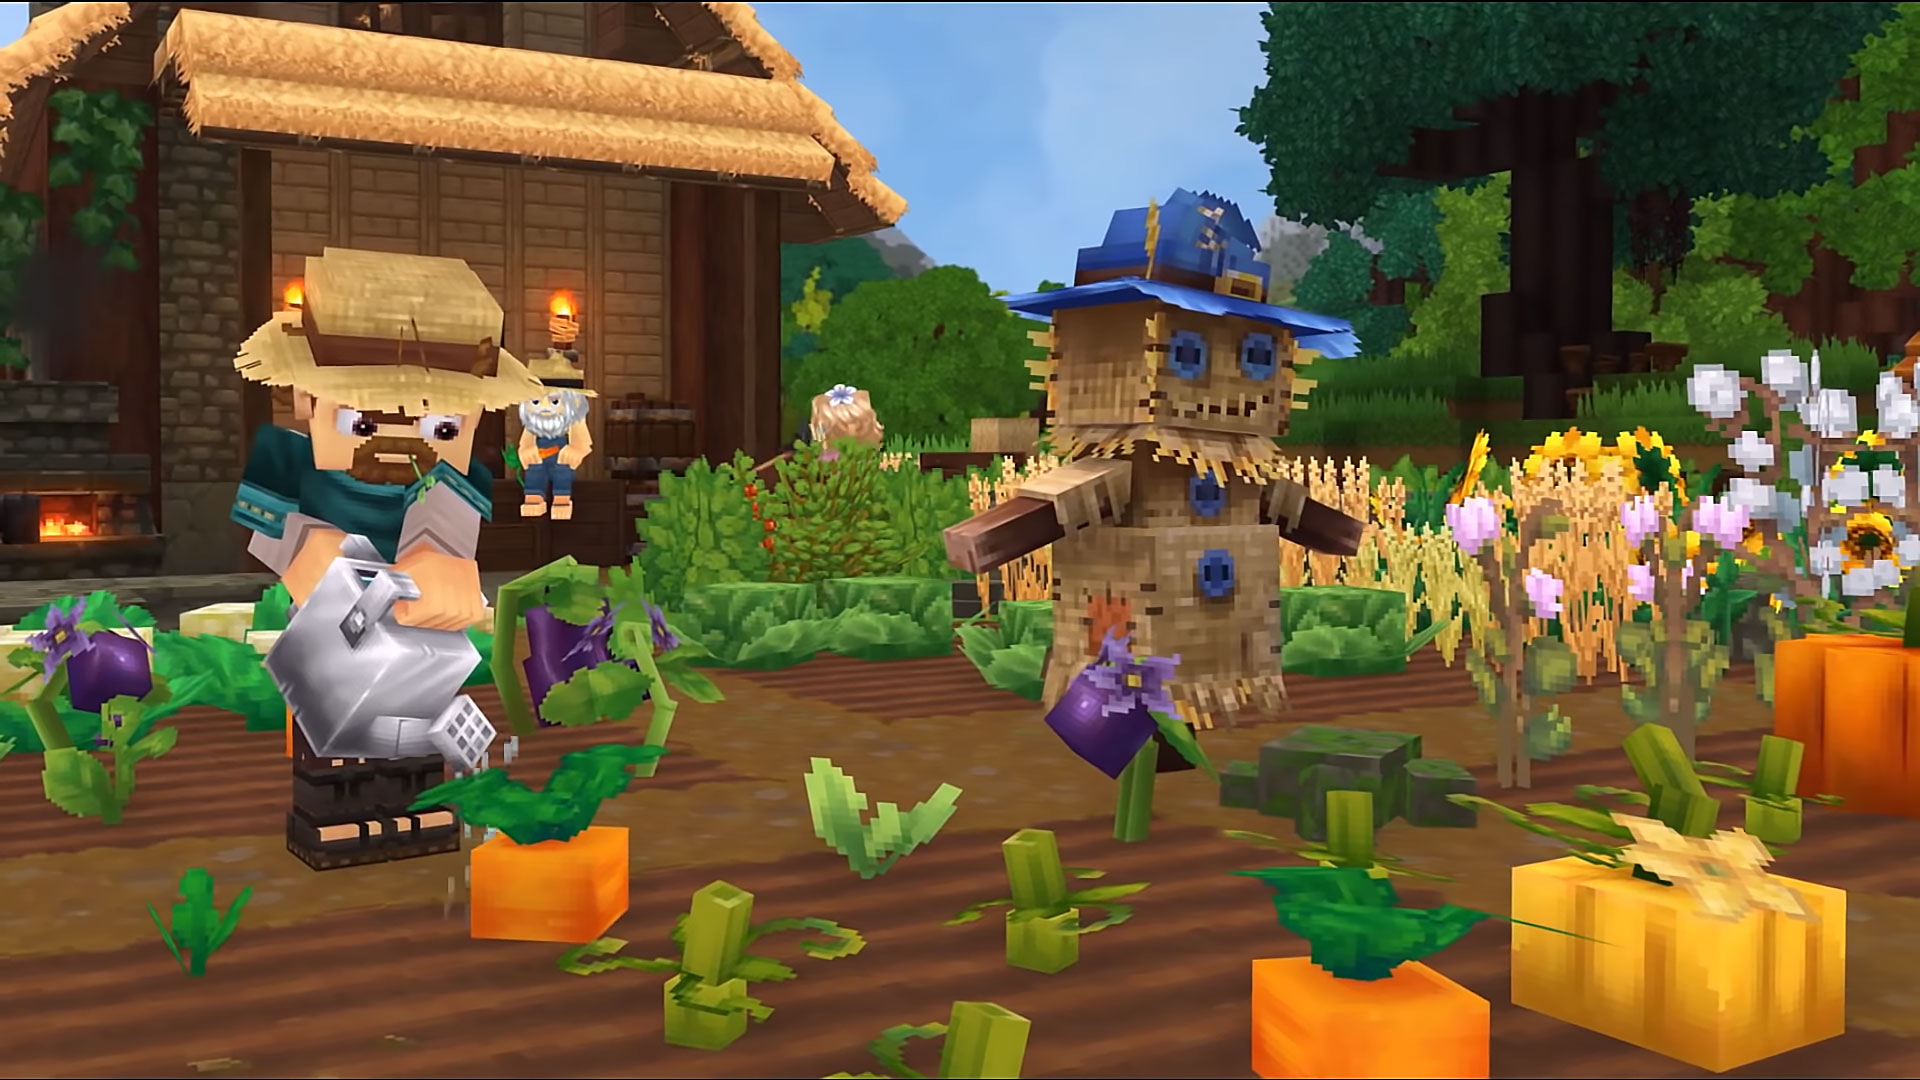 Hytale Wallpapers Hd Desktop Iphone Amp Mobile Pro